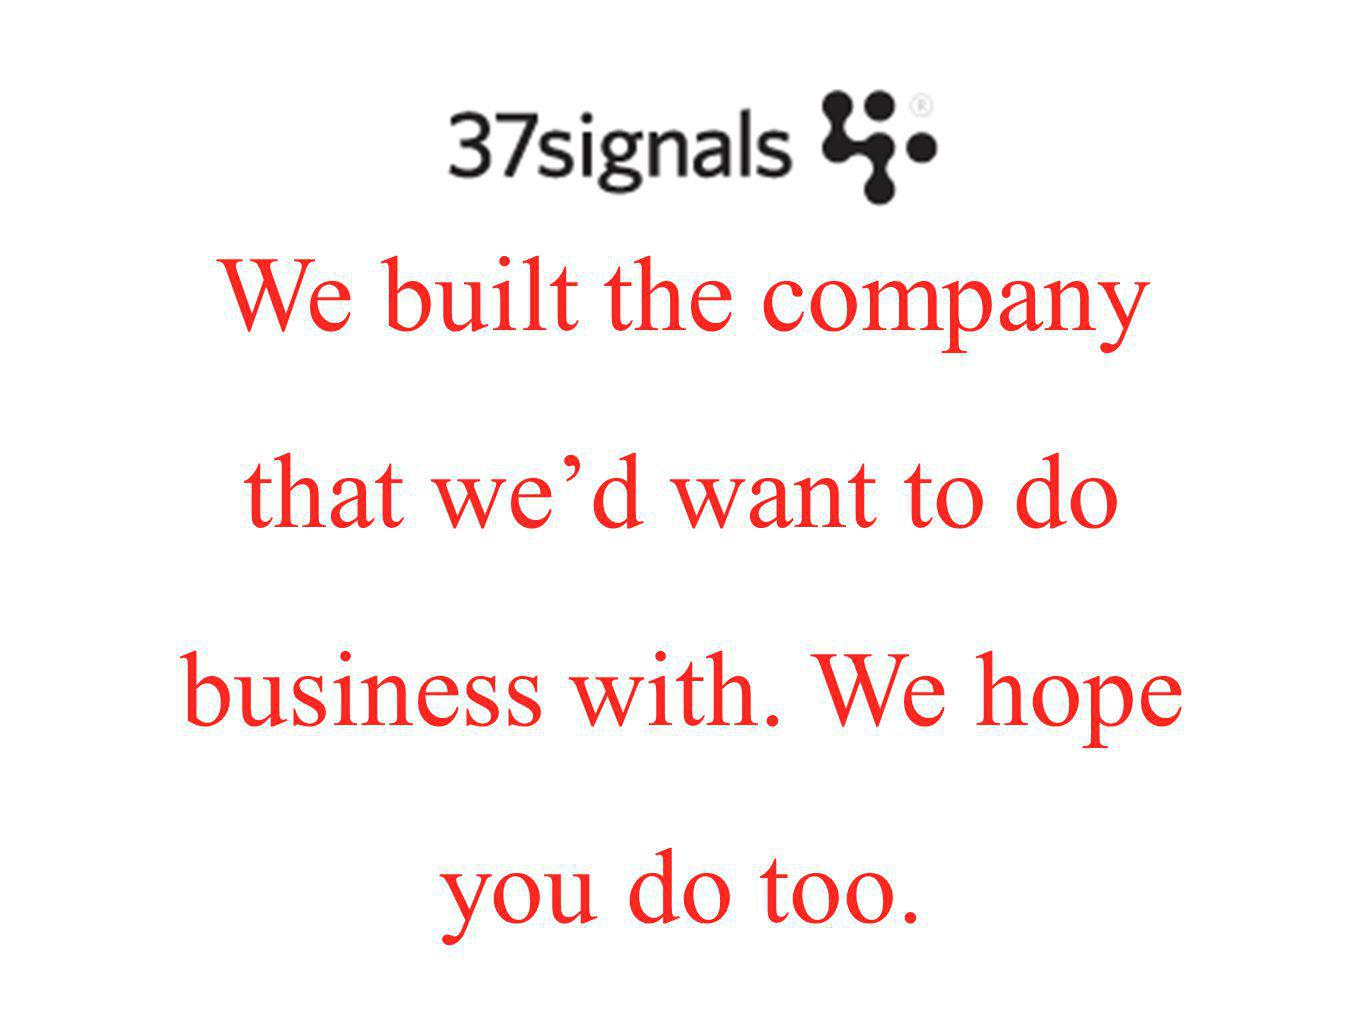 We built the company that we'd want to do business with